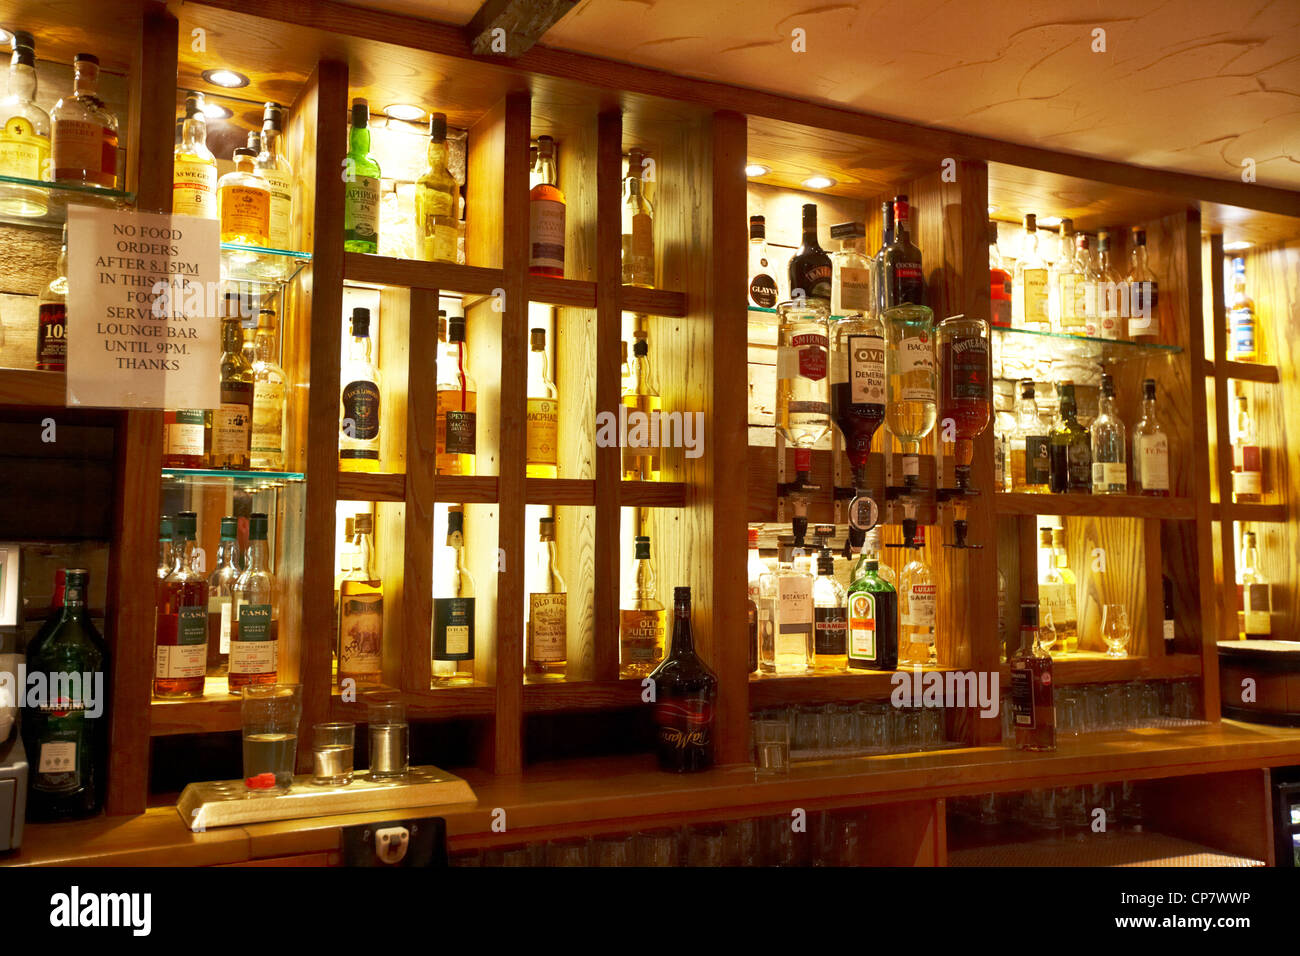 selection of spirits and whiskies in a pub in Scotland UK - Stock Image